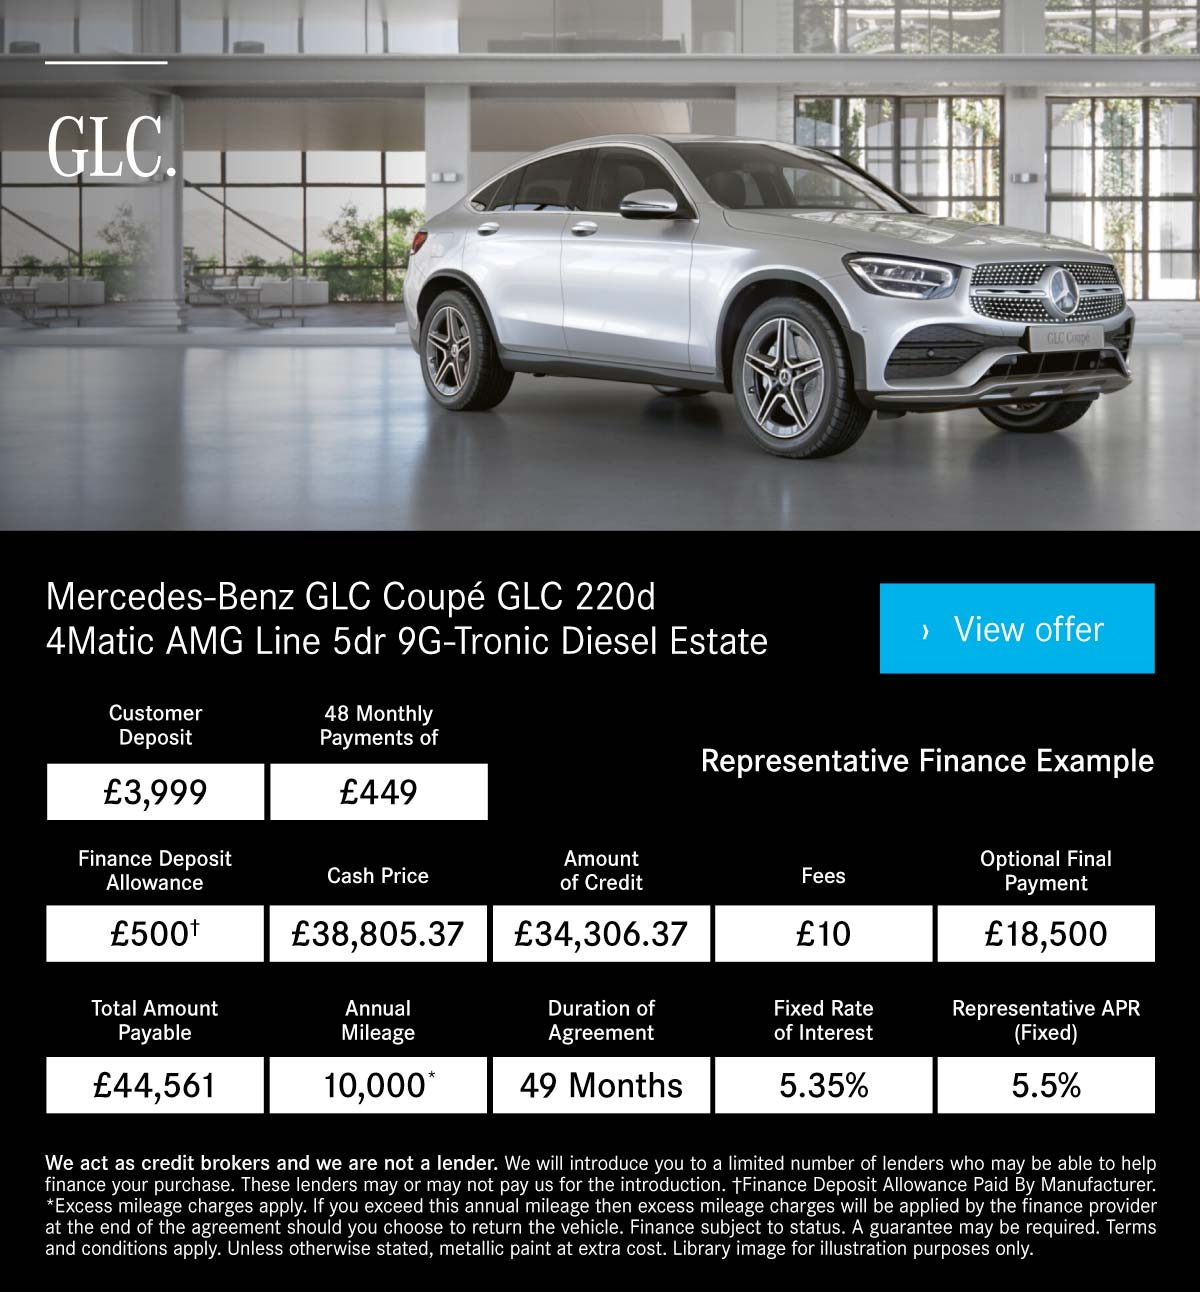 (Mercedes GLC Coupe) Mercedes GLC Coupe Q4 161019